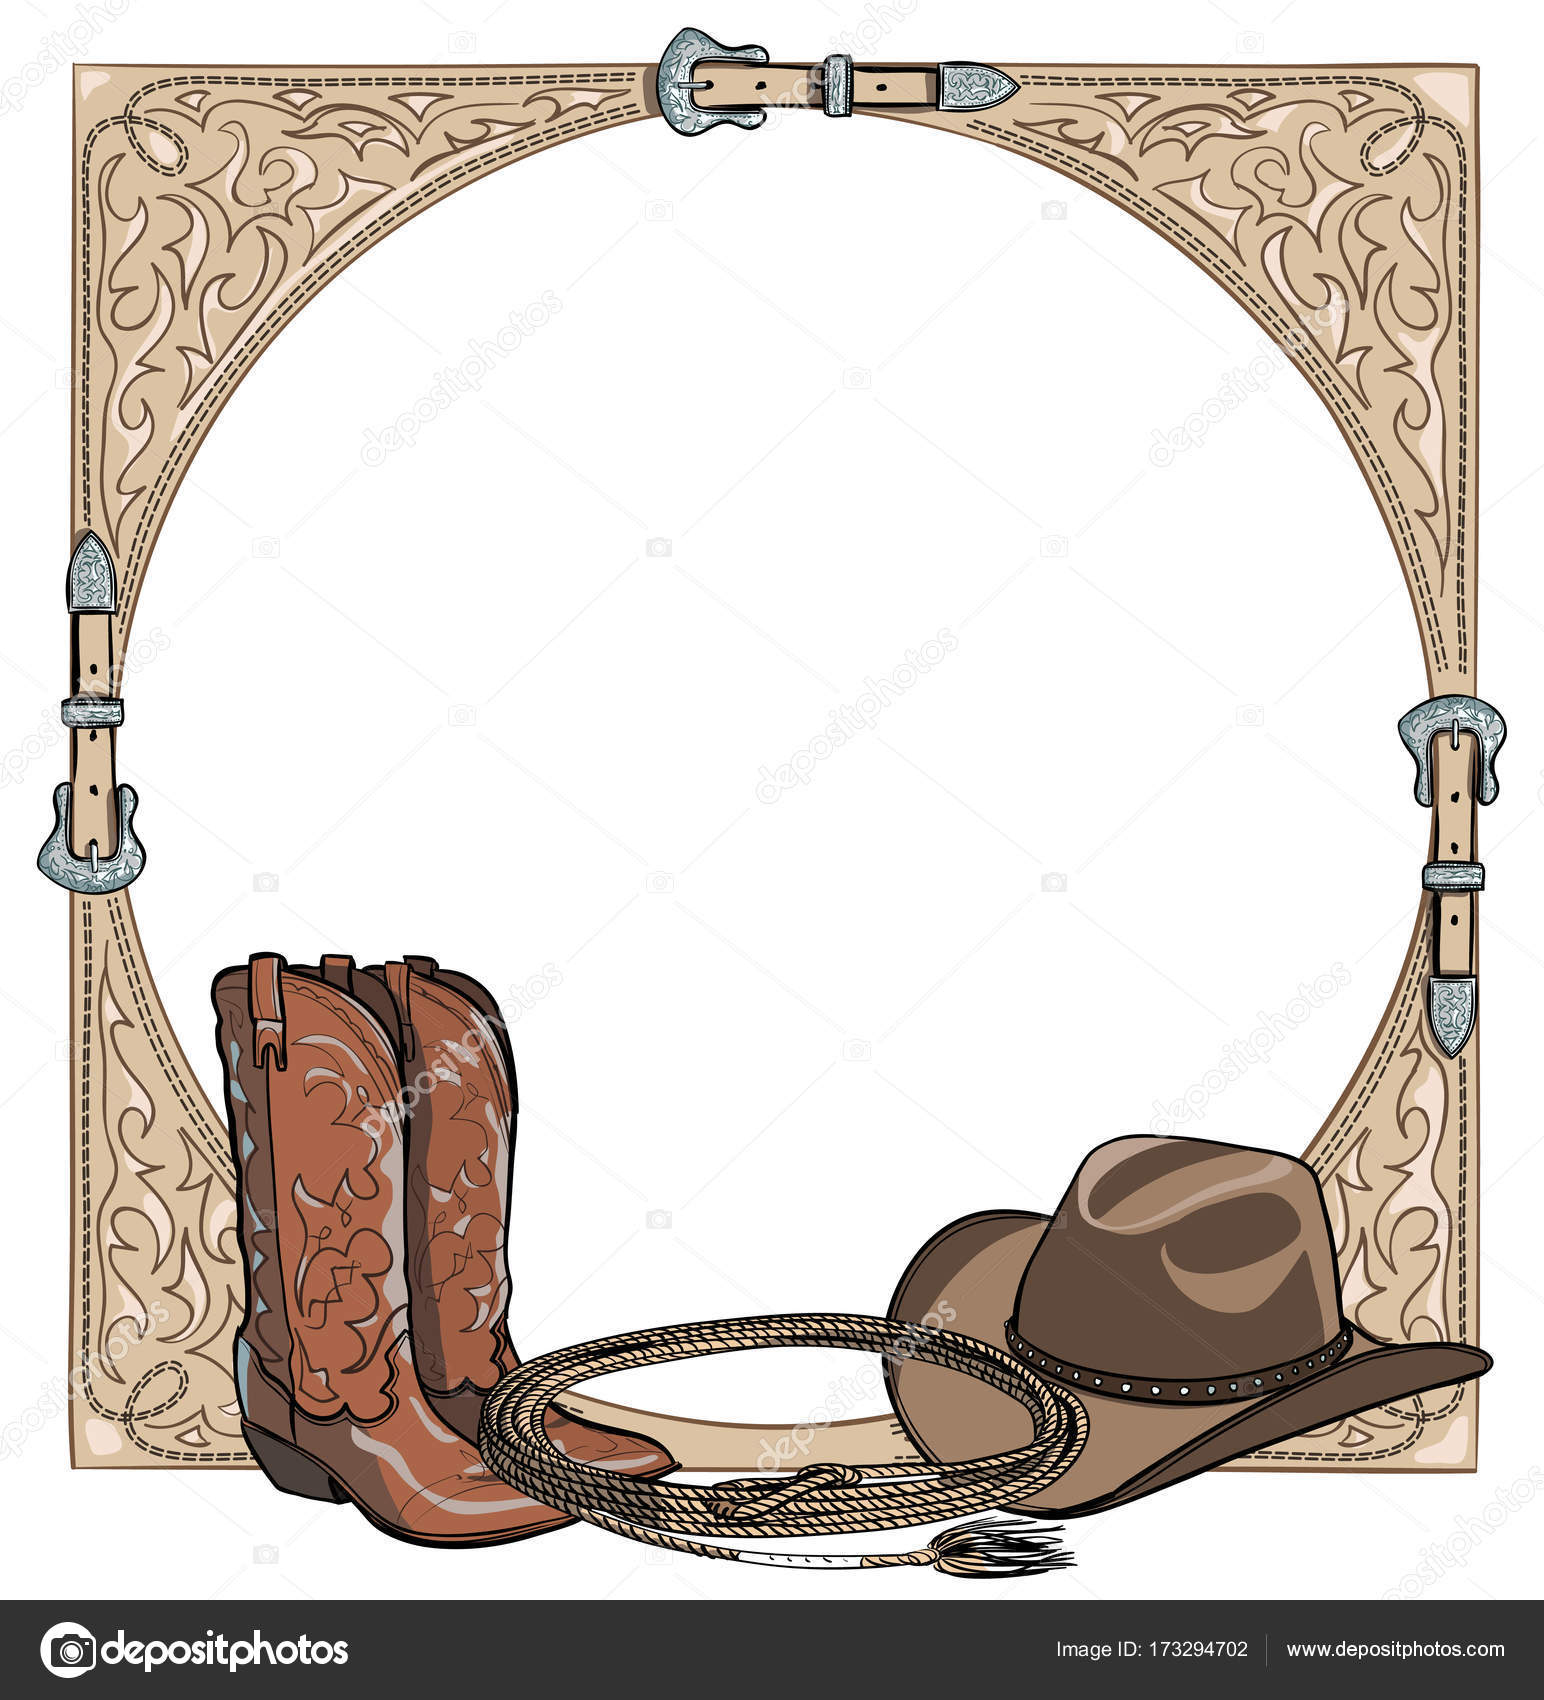 Pictures Western Horse Drawing Cowboy Western Horse Equine Riding Tack Tool In The Western Leather Belt Frame Stock Vector C Larisa Zorina 173294702